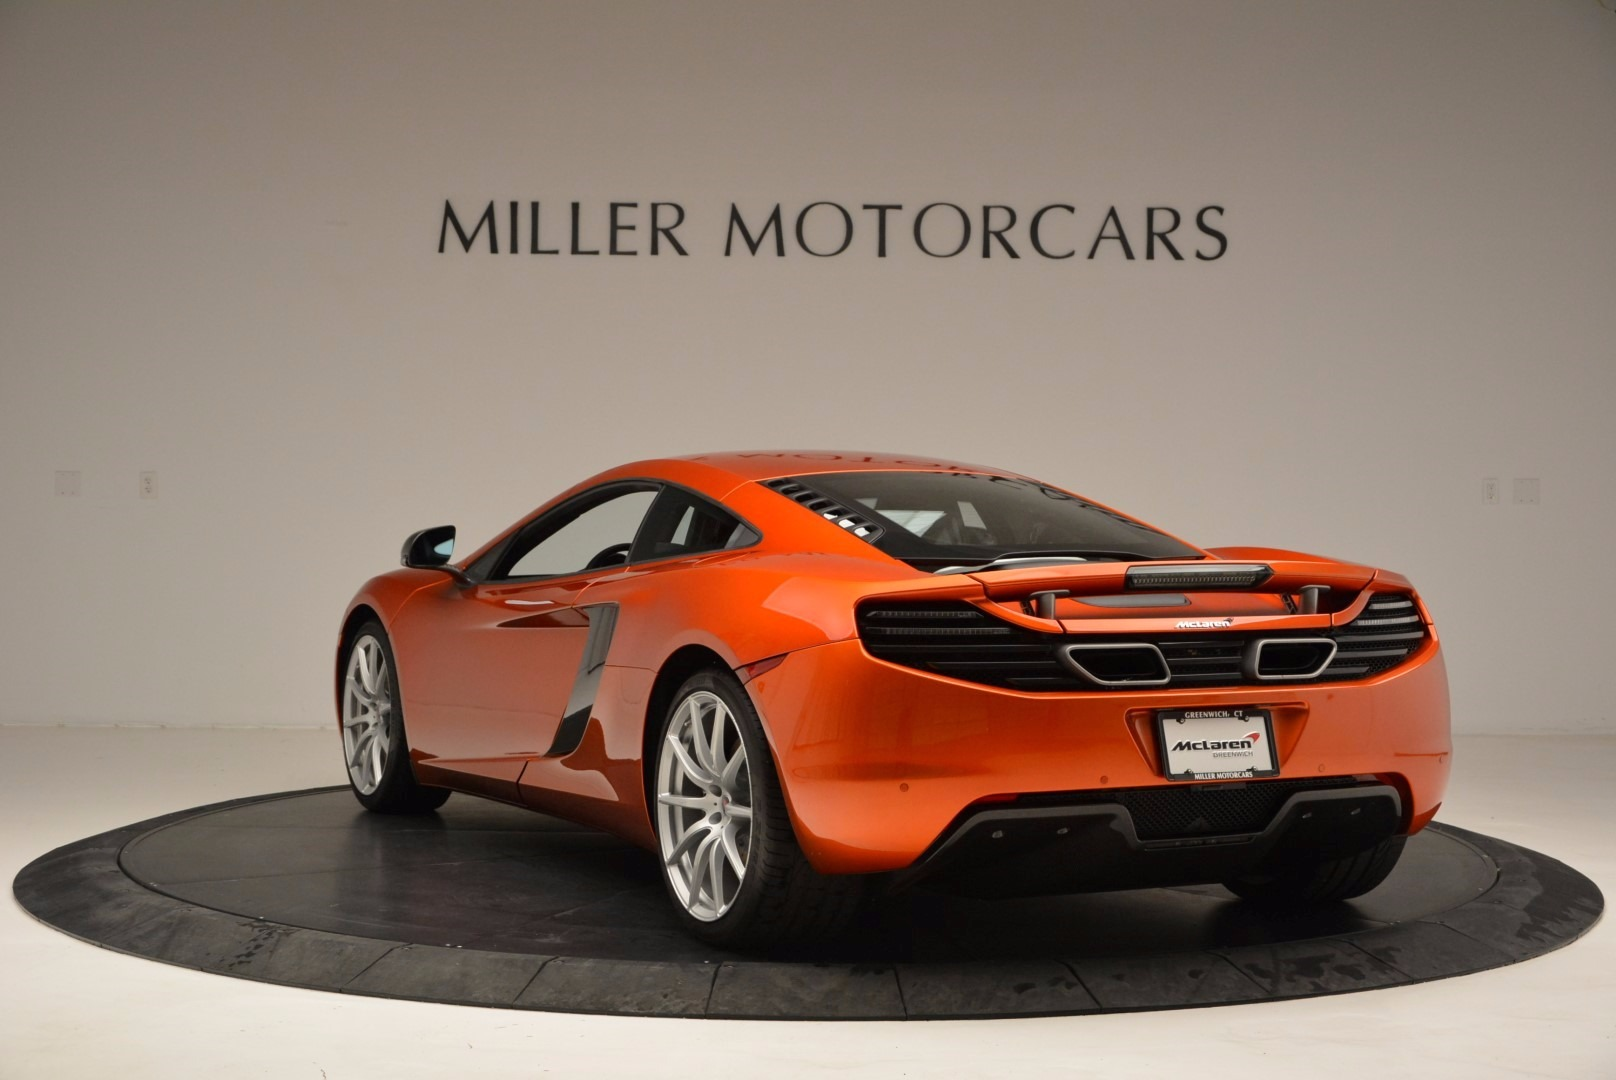 Used 2012 McLaren MP4-12C  For Sale In Greenwich, CT. Alfa Romeo of Greenwich, 3094 1035_p5